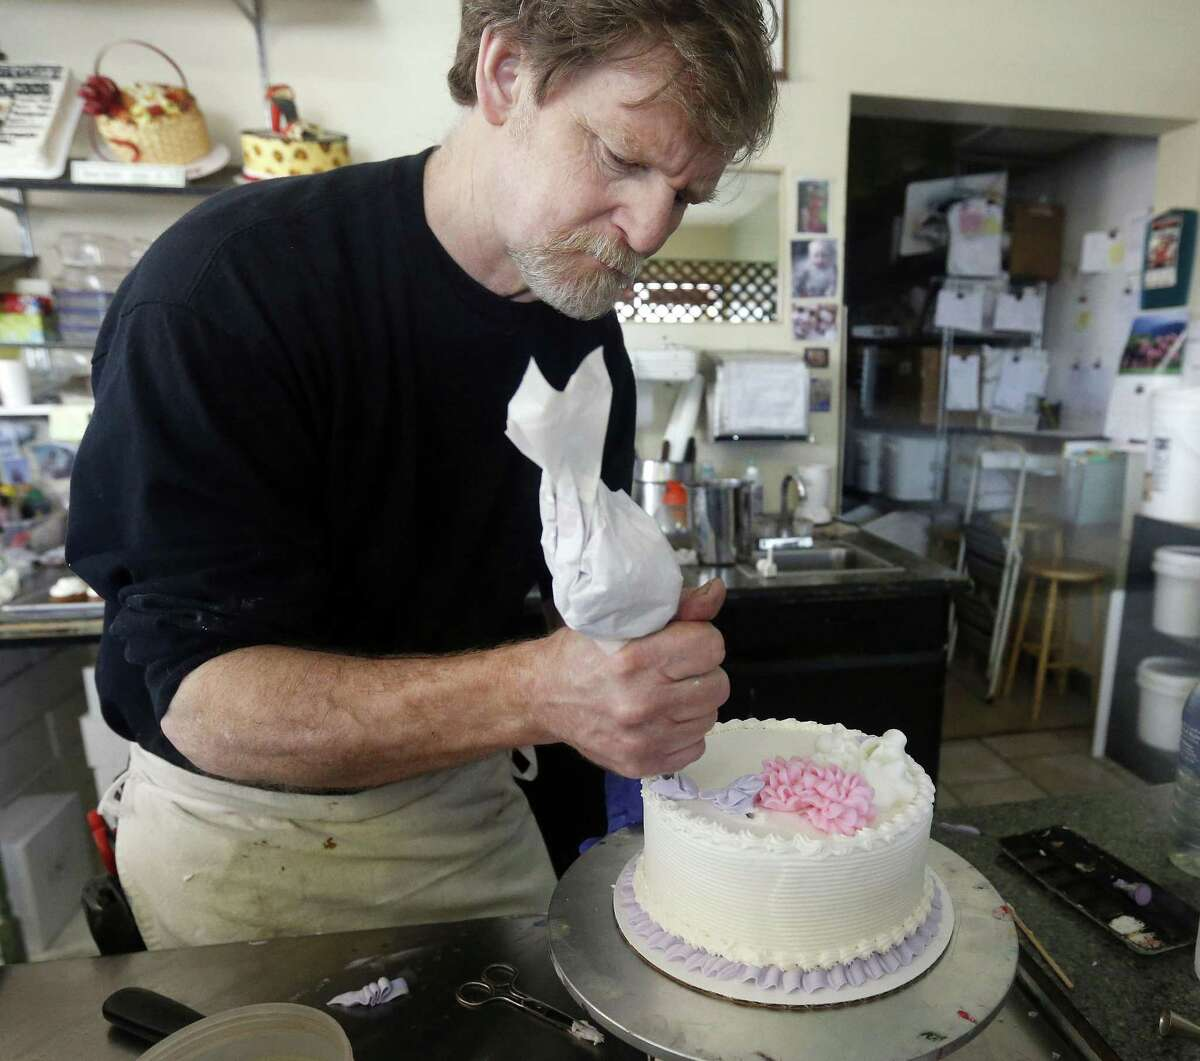 In this March 10, 2014, file photo, Masterpiece Cakeshop owner Jack Phillips decorates a cake inside his store in Lakewood, Colo. Prominent chefs, bakers and restaurant owners want the Supreme Court to rule against a Colorado baker who wouldnt make a cake for a same-sex couples wedding. The food makers say that once they open their doors for business, they dont get to choose their customers.